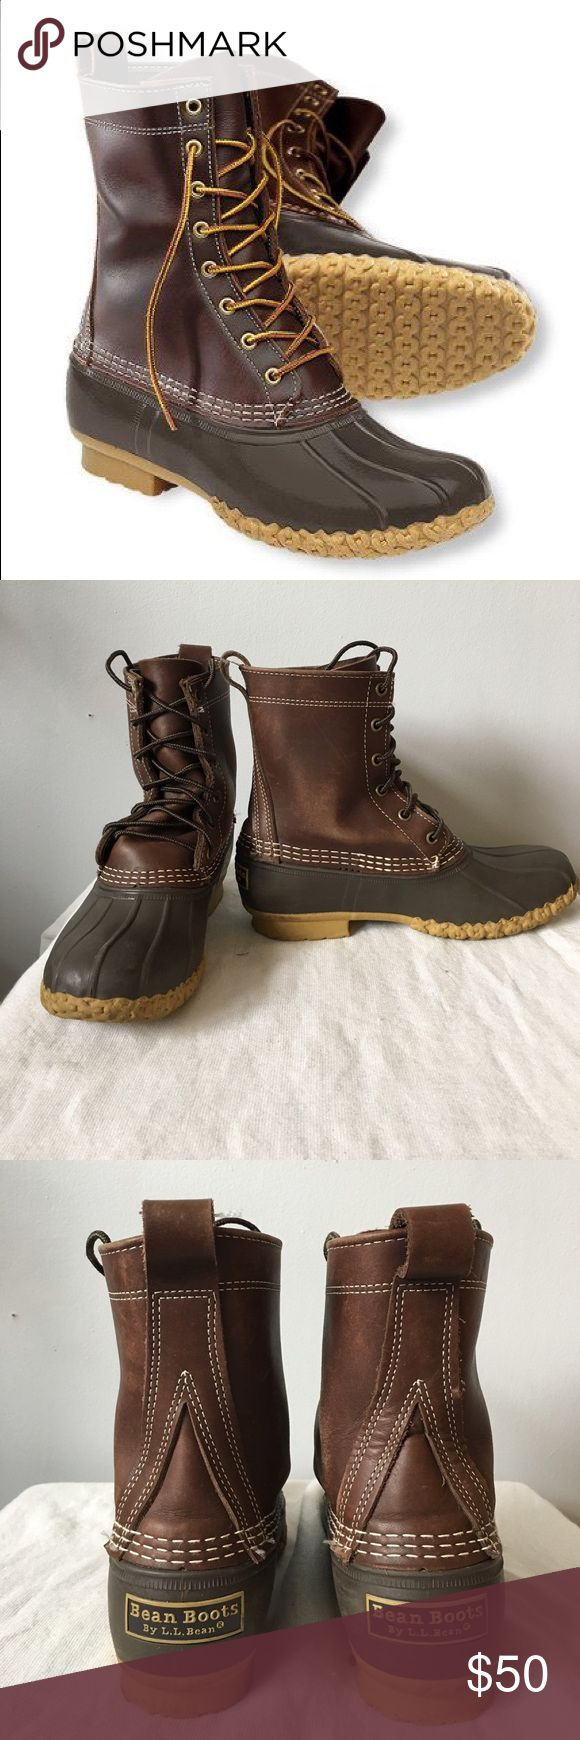 LL Bean Boots in Brown Kid's 4, Women's 6 Iconic brown Bean boots! Nothing beats the original. Perfect for snow or rain. These boots were from 2014 and are kid's size 4, which fits like a women's 6. General wear and scuffing throughout, but still in good condition. L.L. Bean Shoes Winter & Rain Boots